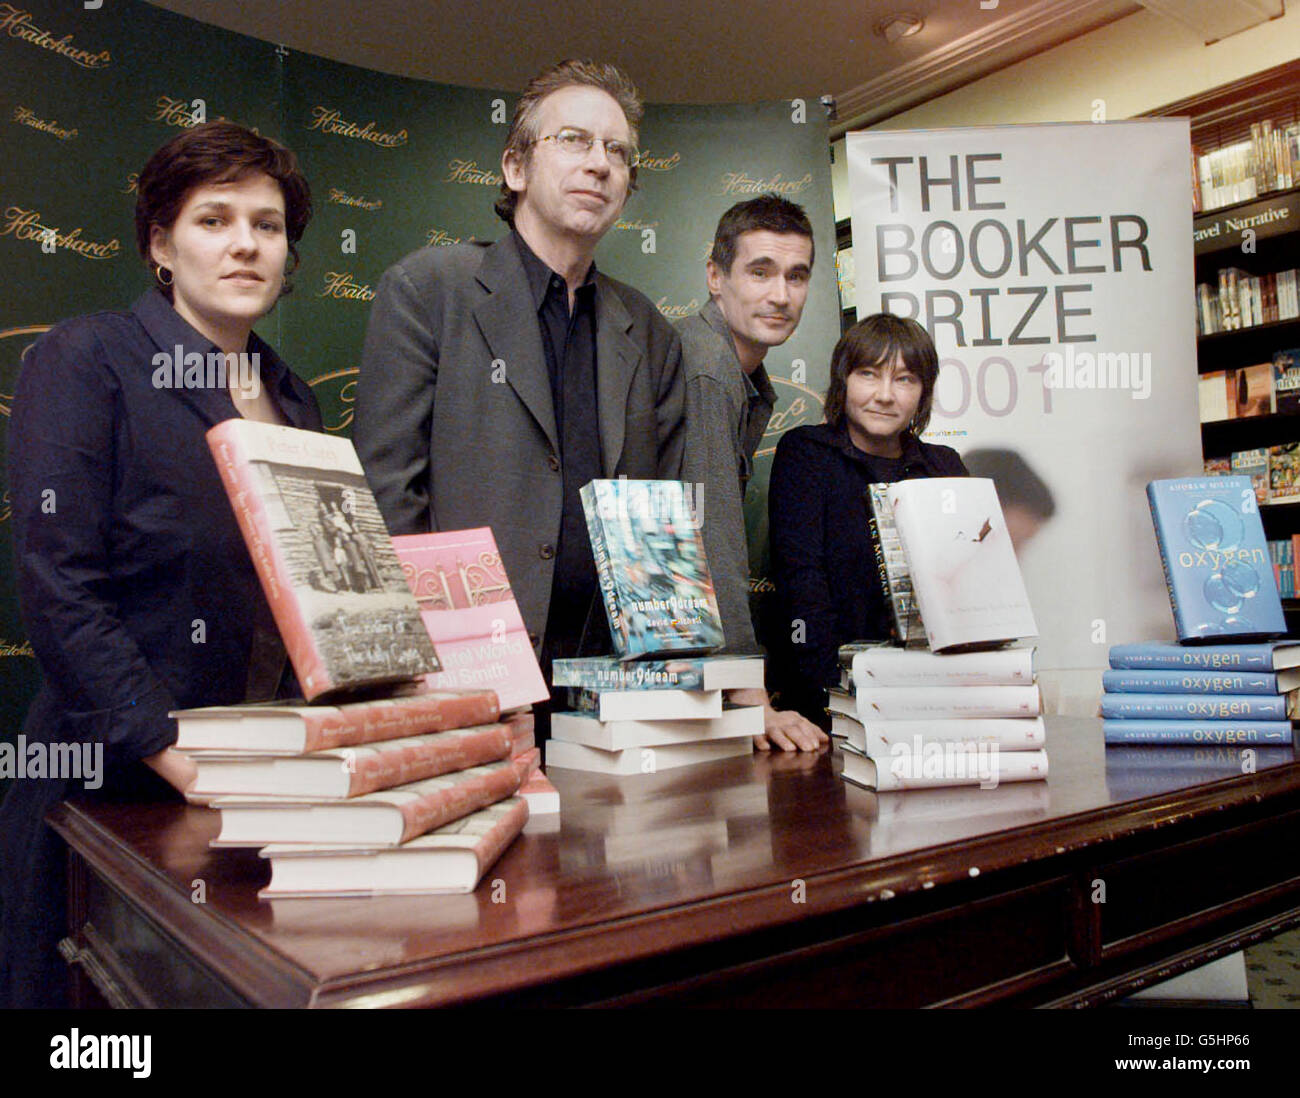 Booker Prize 2001 Shortlist - Stock Image